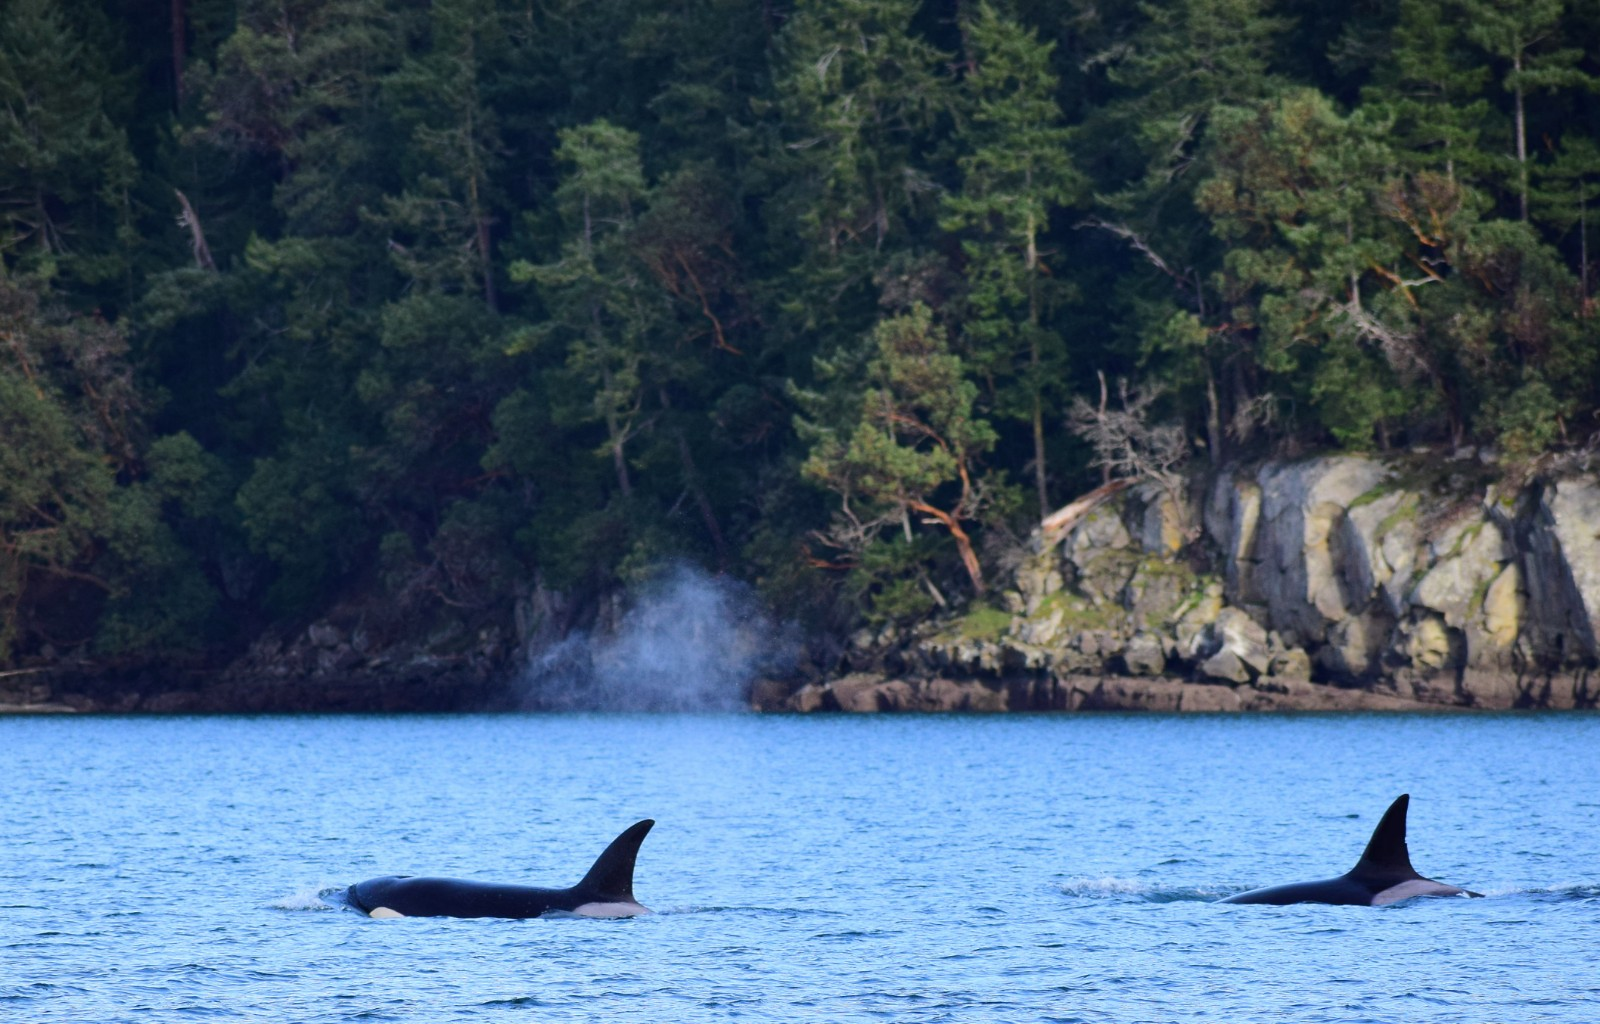 Orca in the sunshine. Picture taken by Captain Ian with a zoom lens.